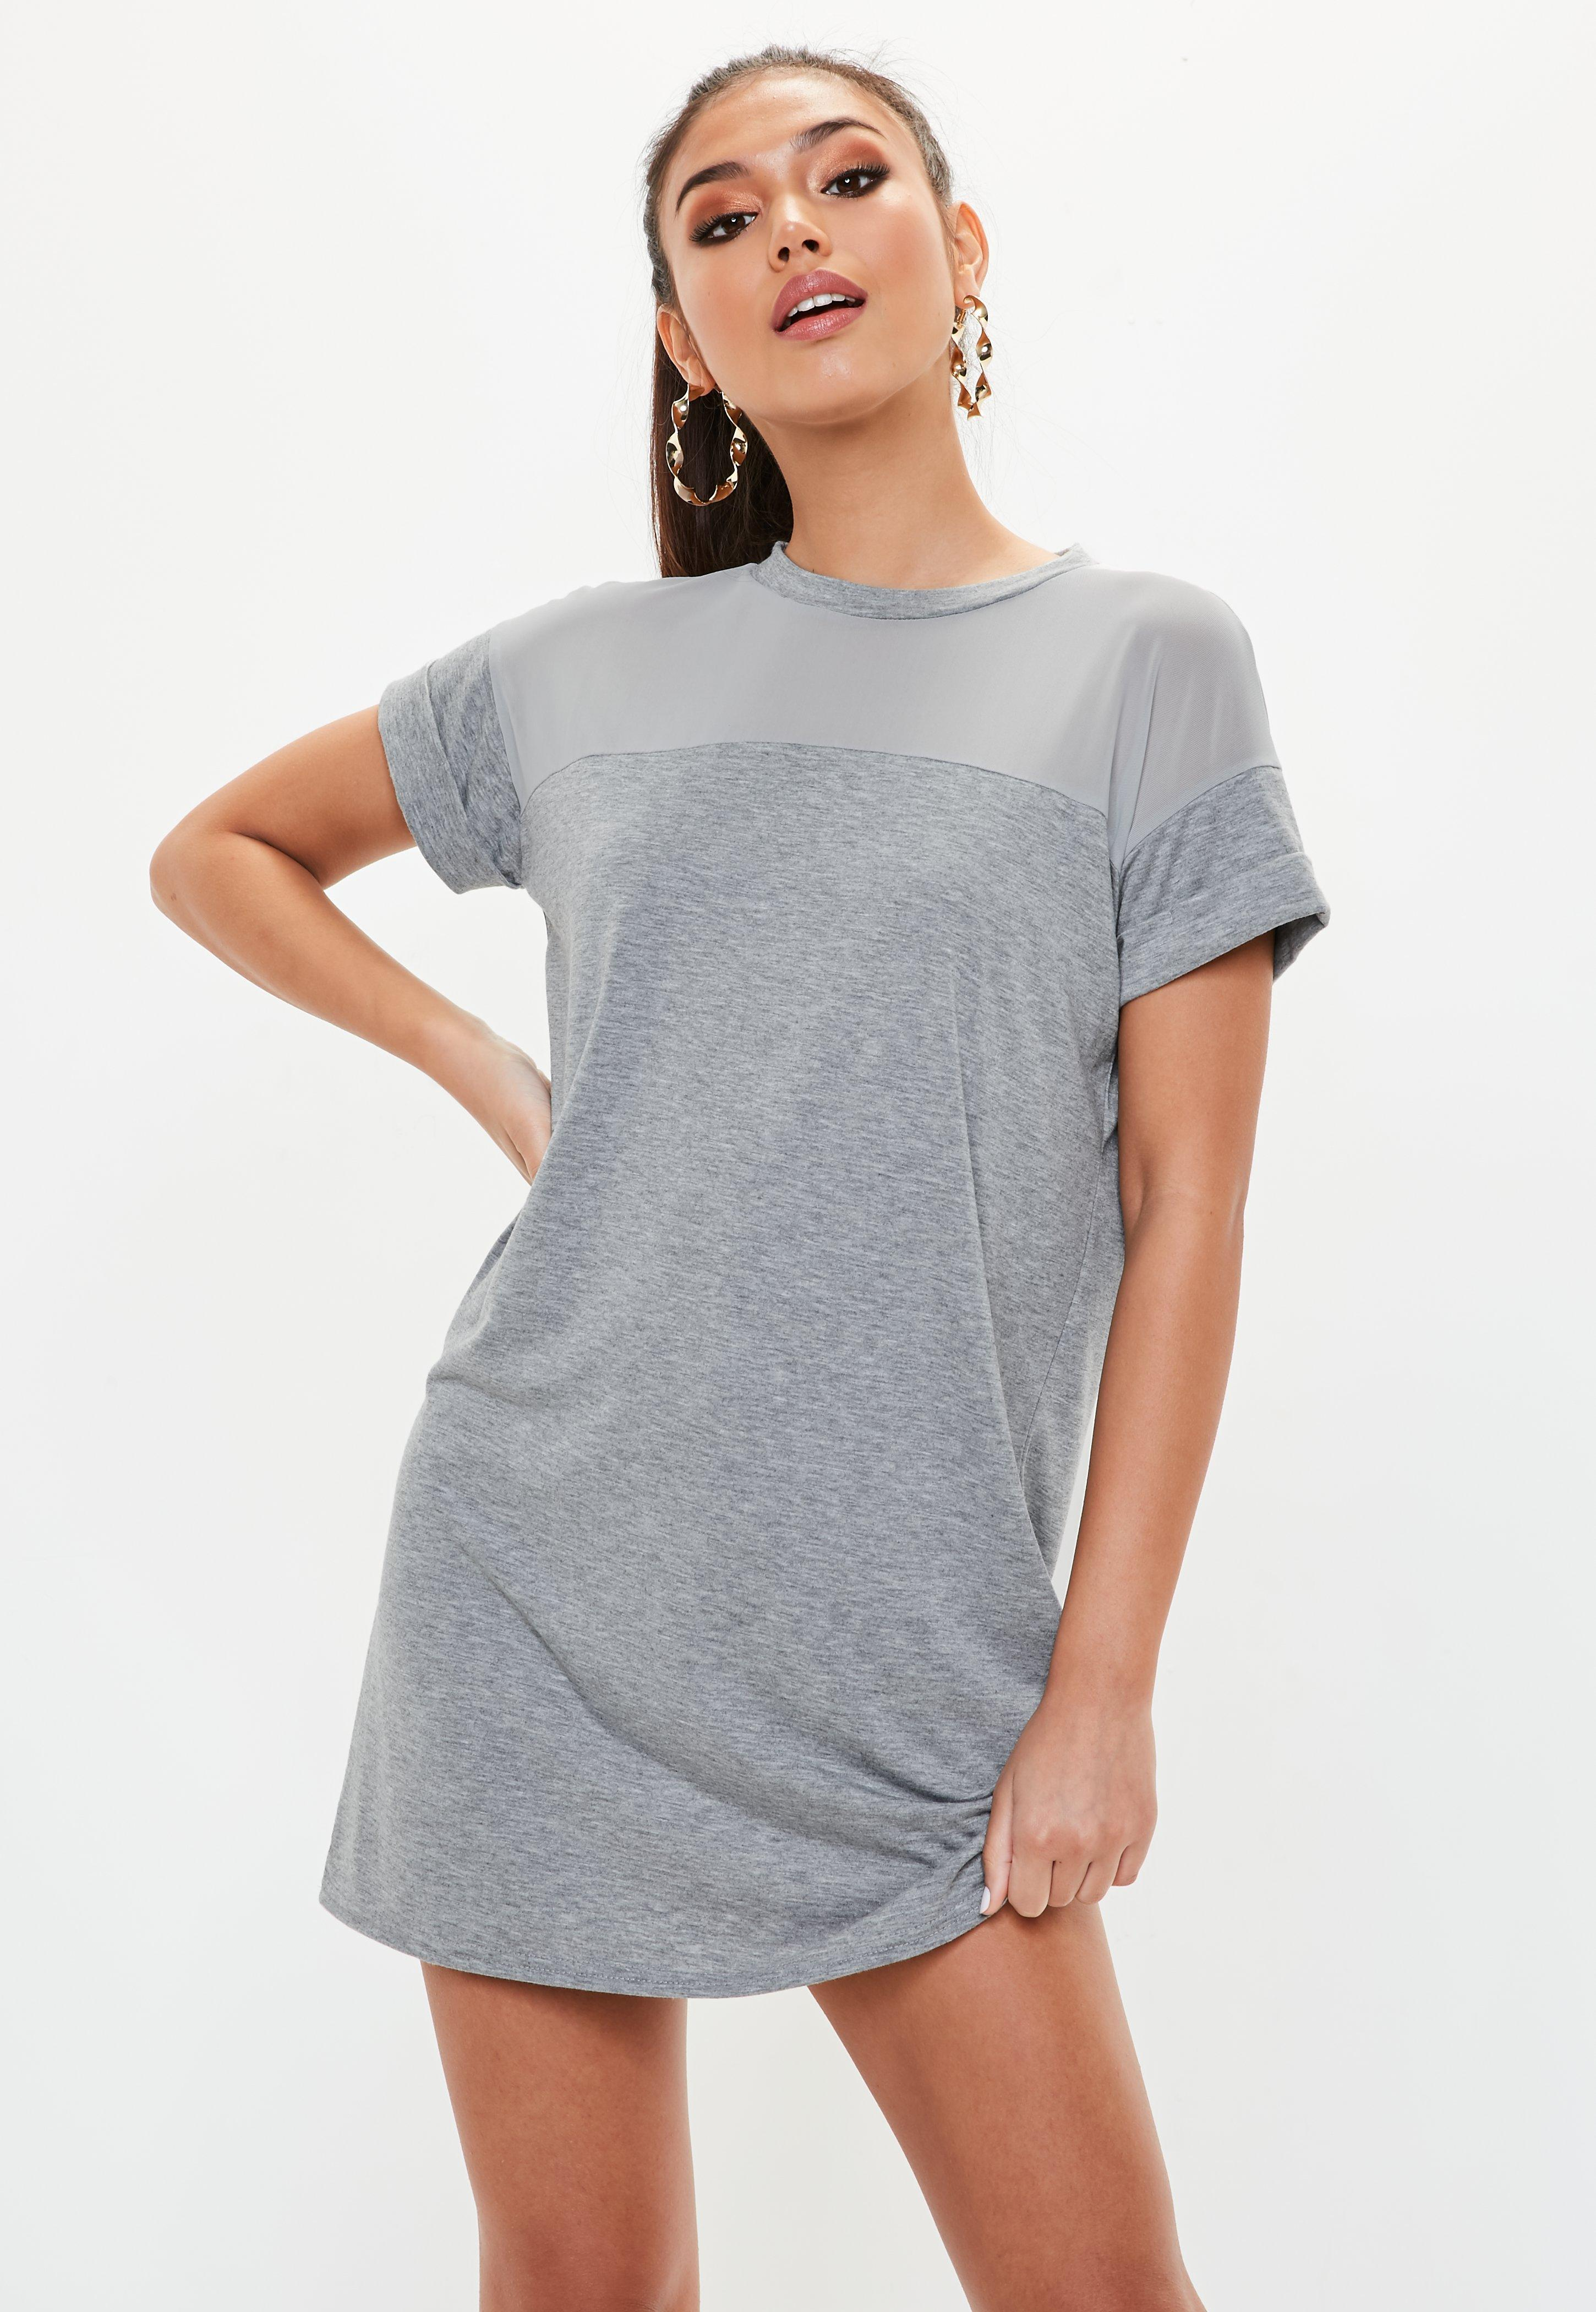 T-Shirt Dresses | Printed & Slogan Dresses - Missguided